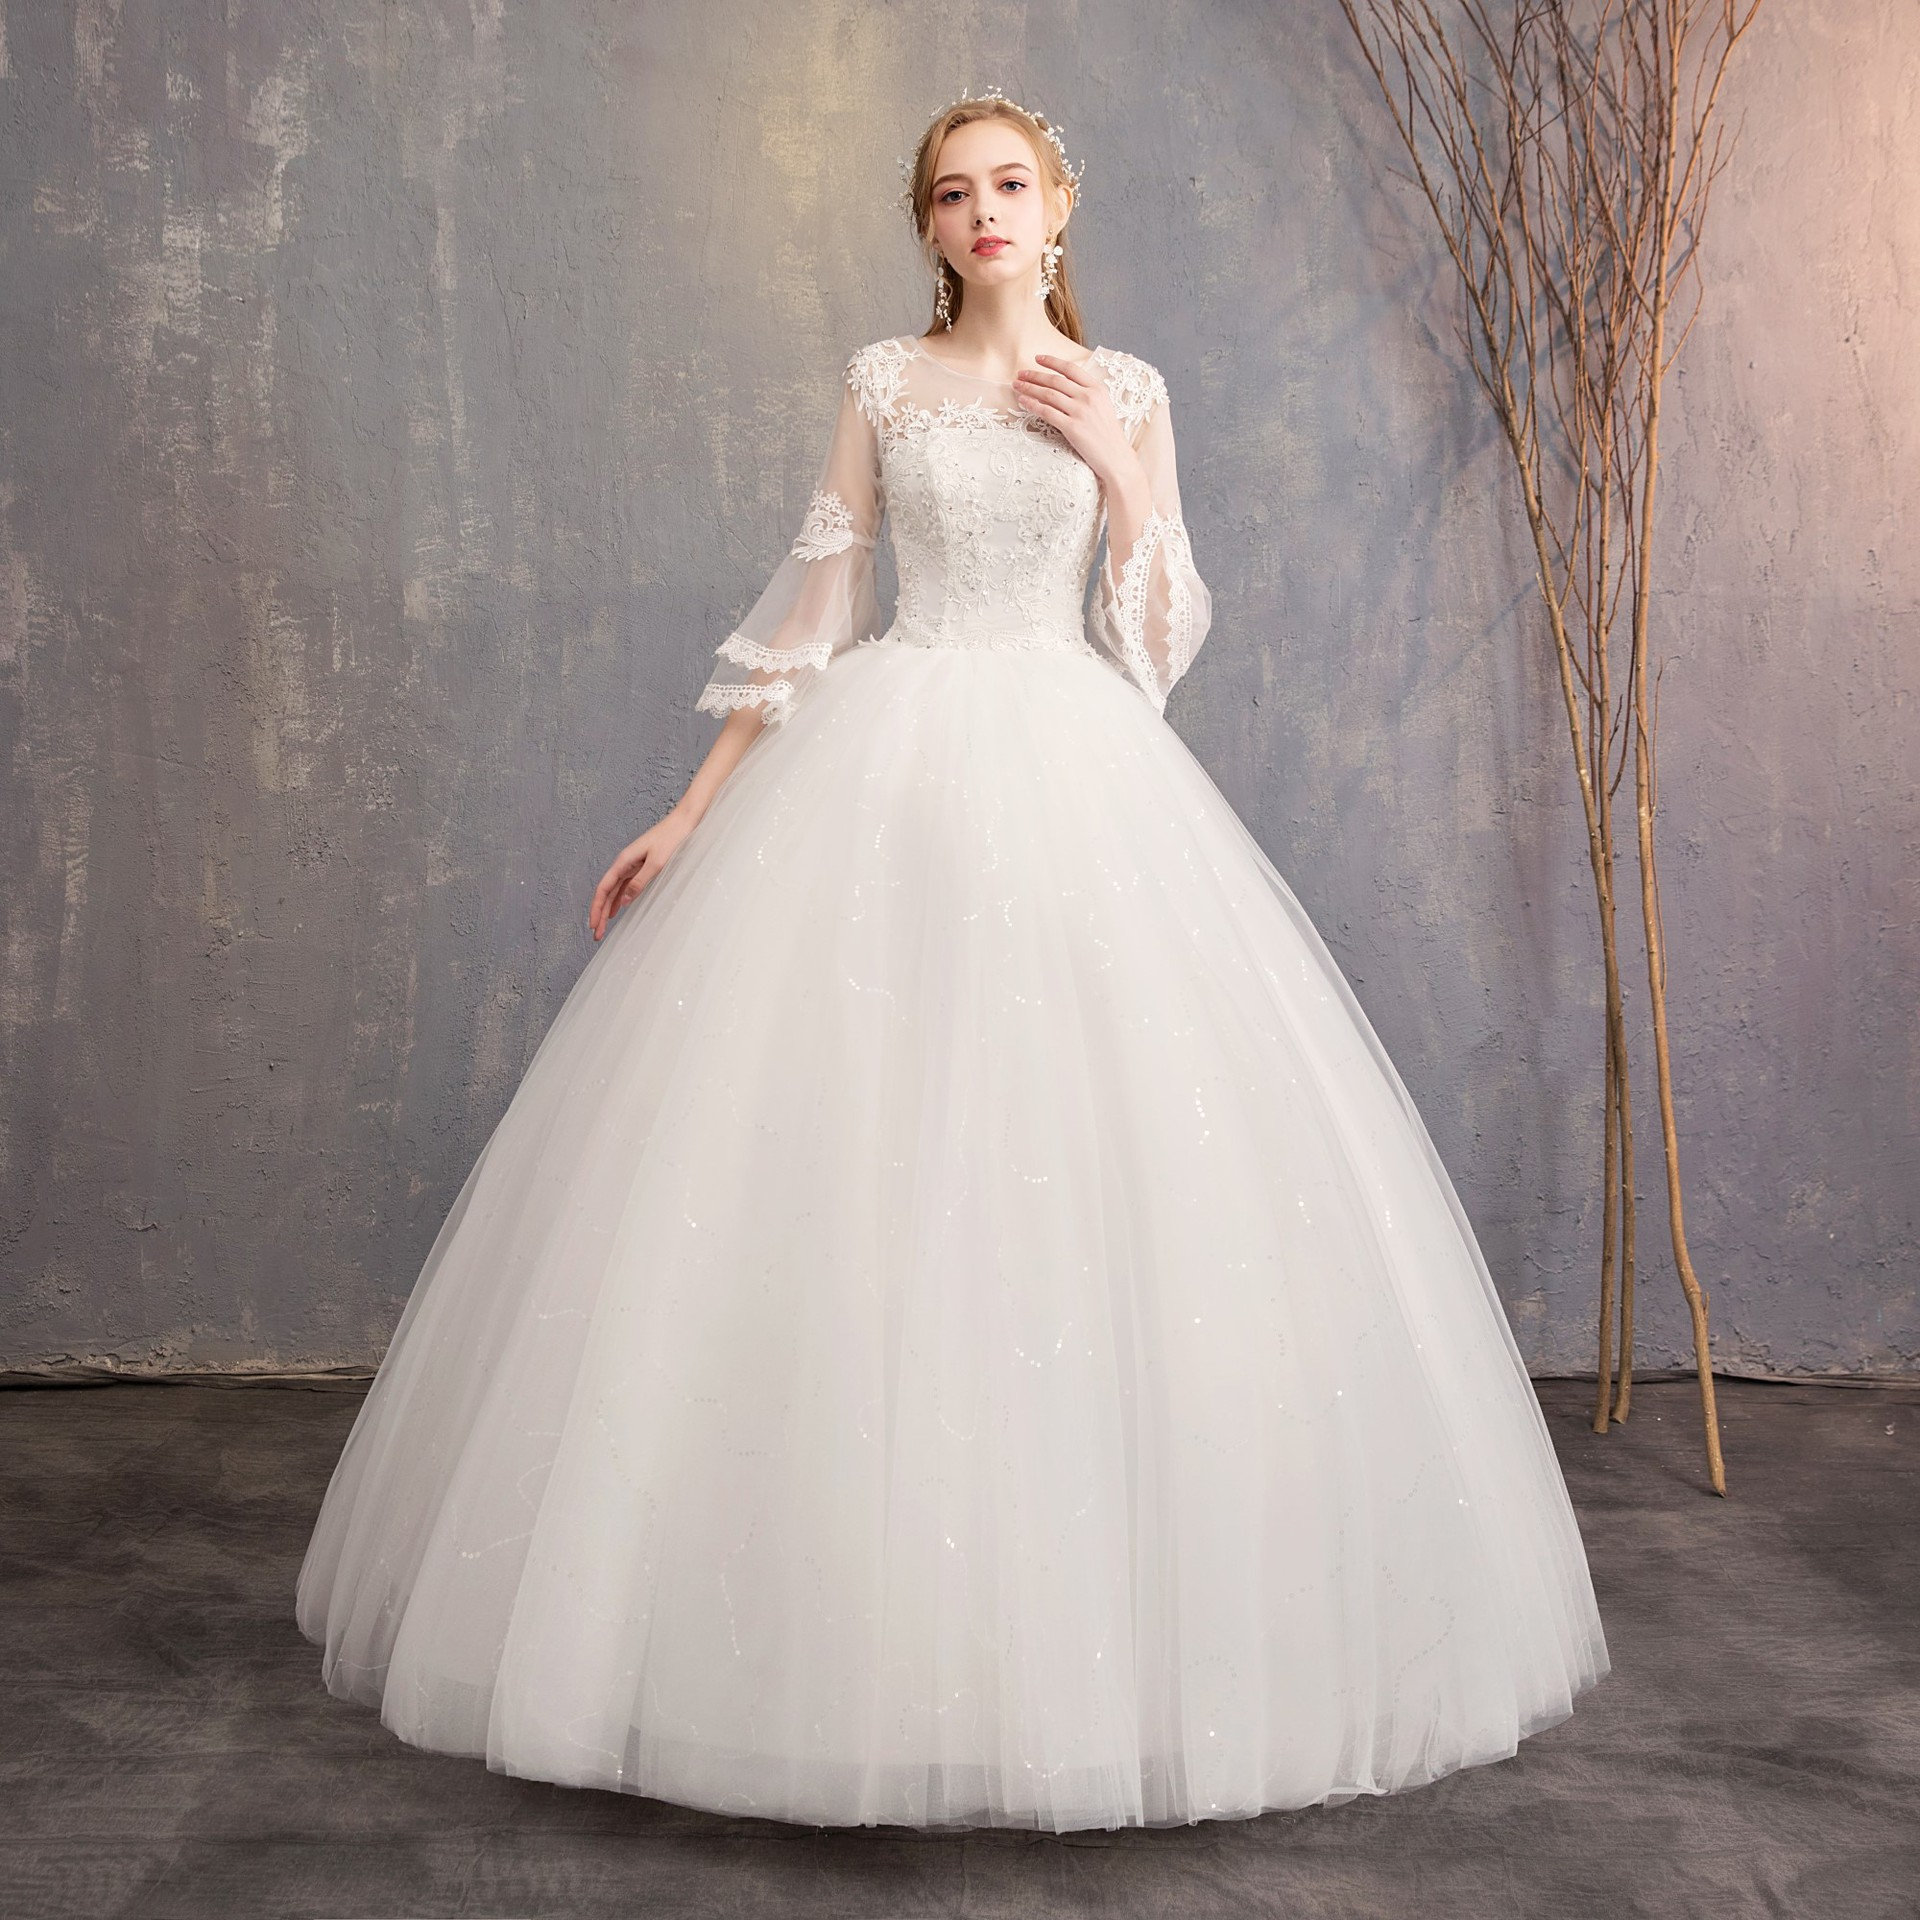 2019 New Arrival Do Dower Full Sleeve Wedding Dress Ball Gown Flare Sleeve Princess Simple Wedding